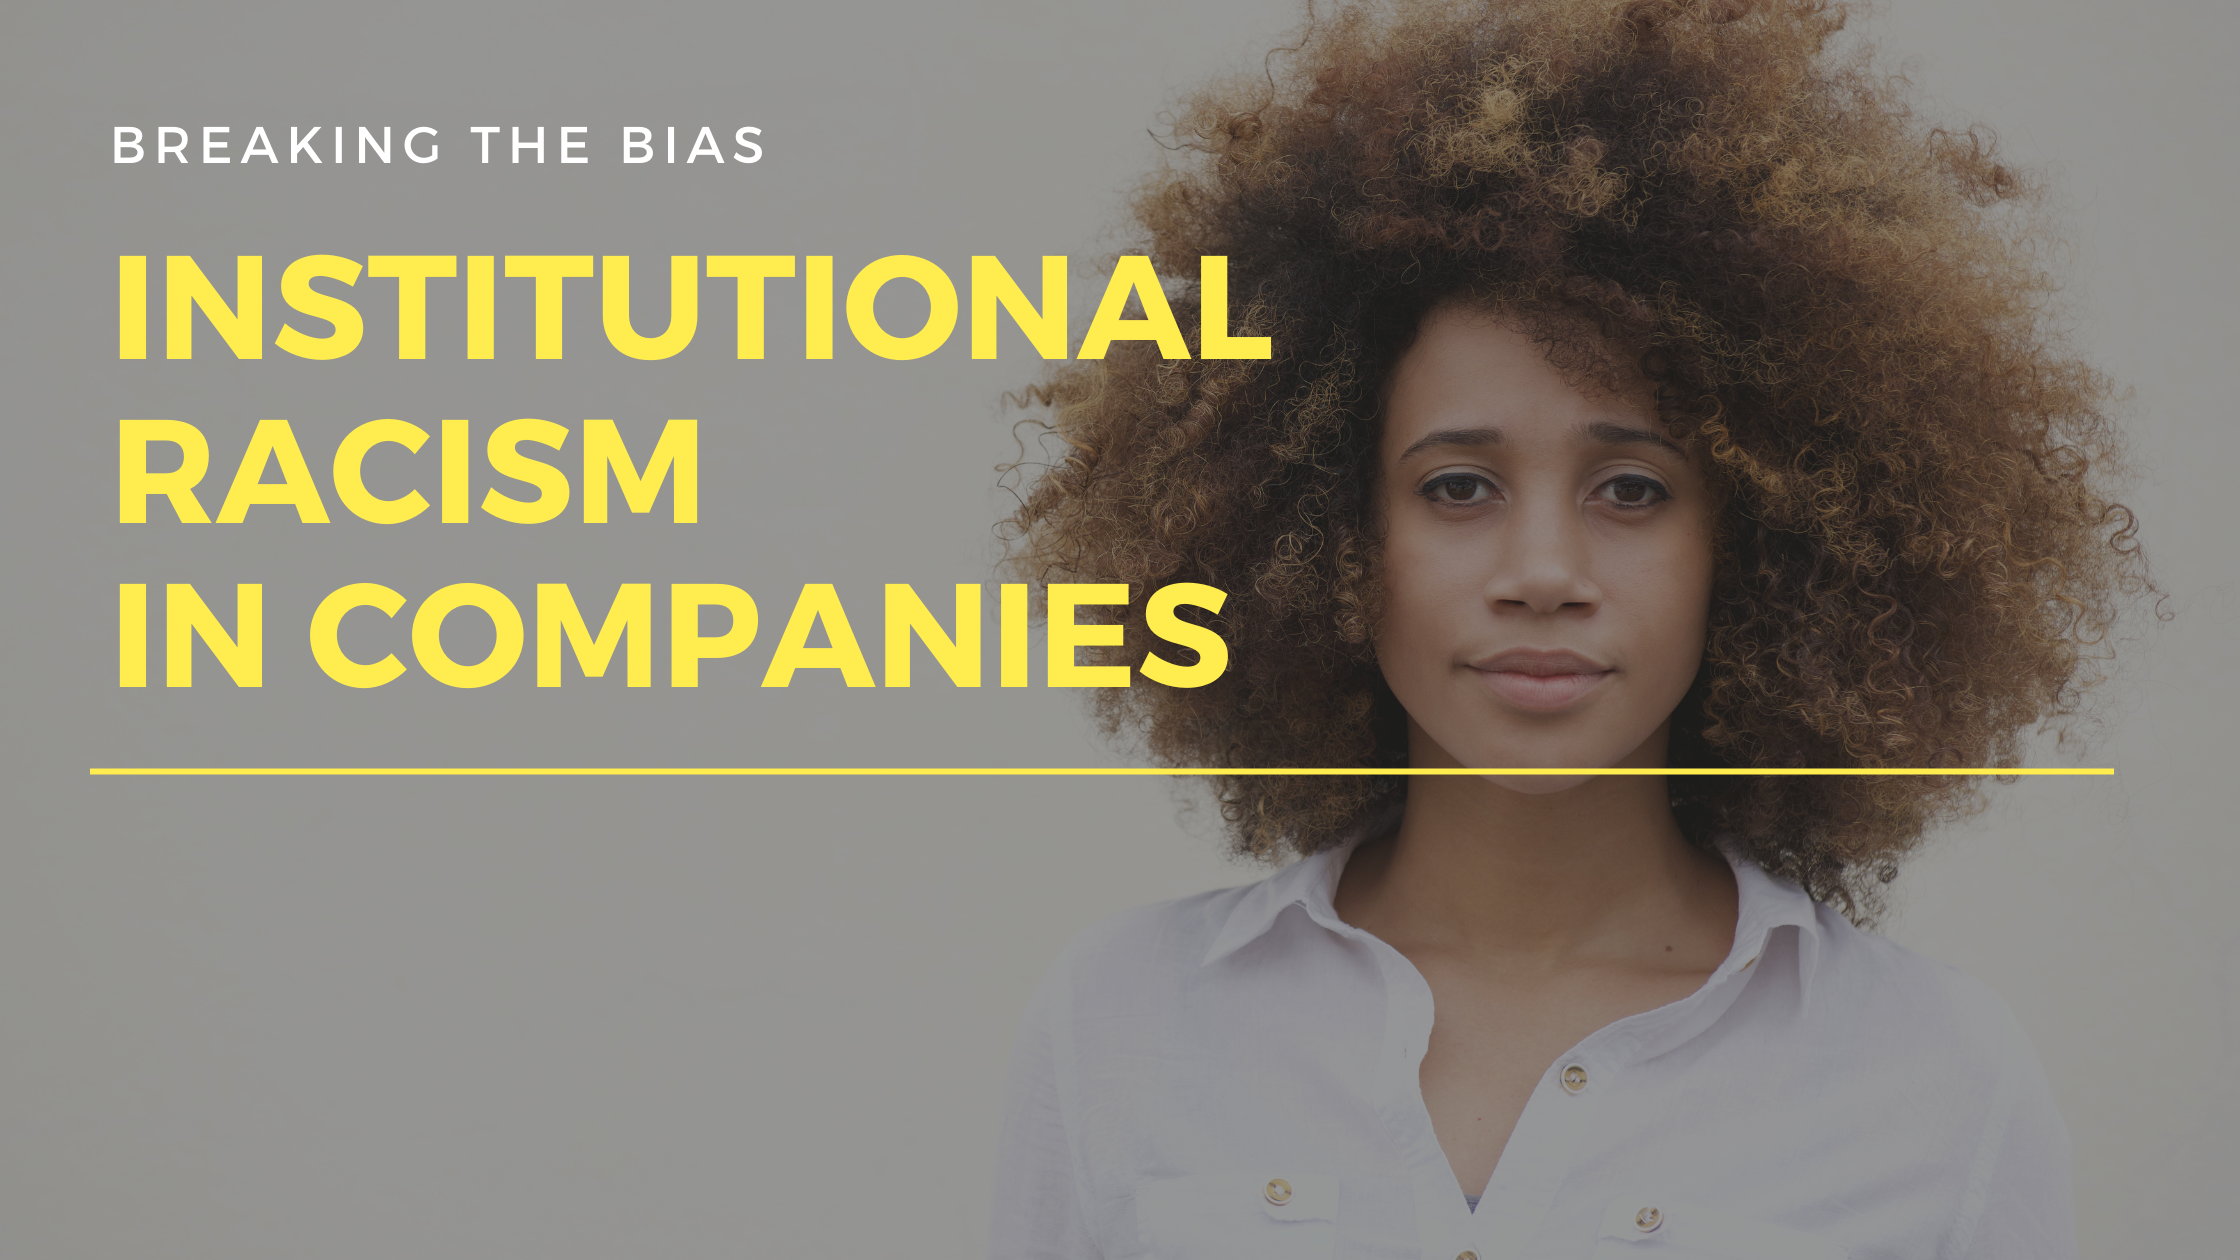 Breaking the Bias: Institutional Racism in Companies